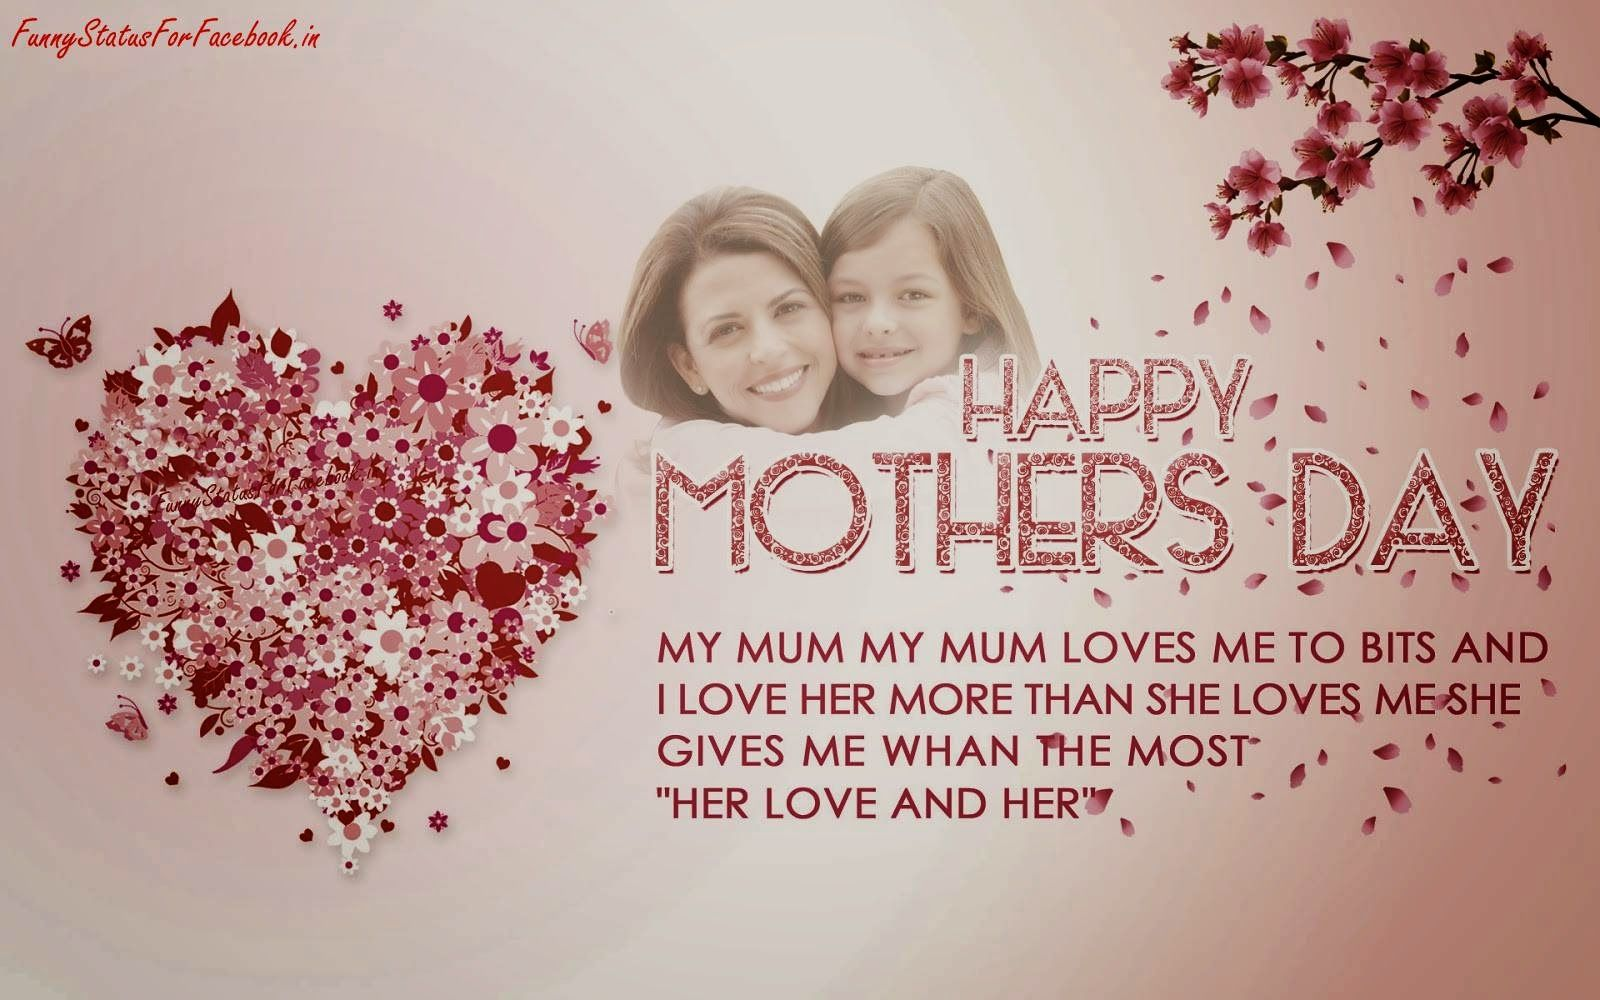 Love quotes for her of the day happy mothers day quotes greeting love quotes for her of the day happy mothers day quotes greeting cards wallpapers with messages kristyandbryce Gallery